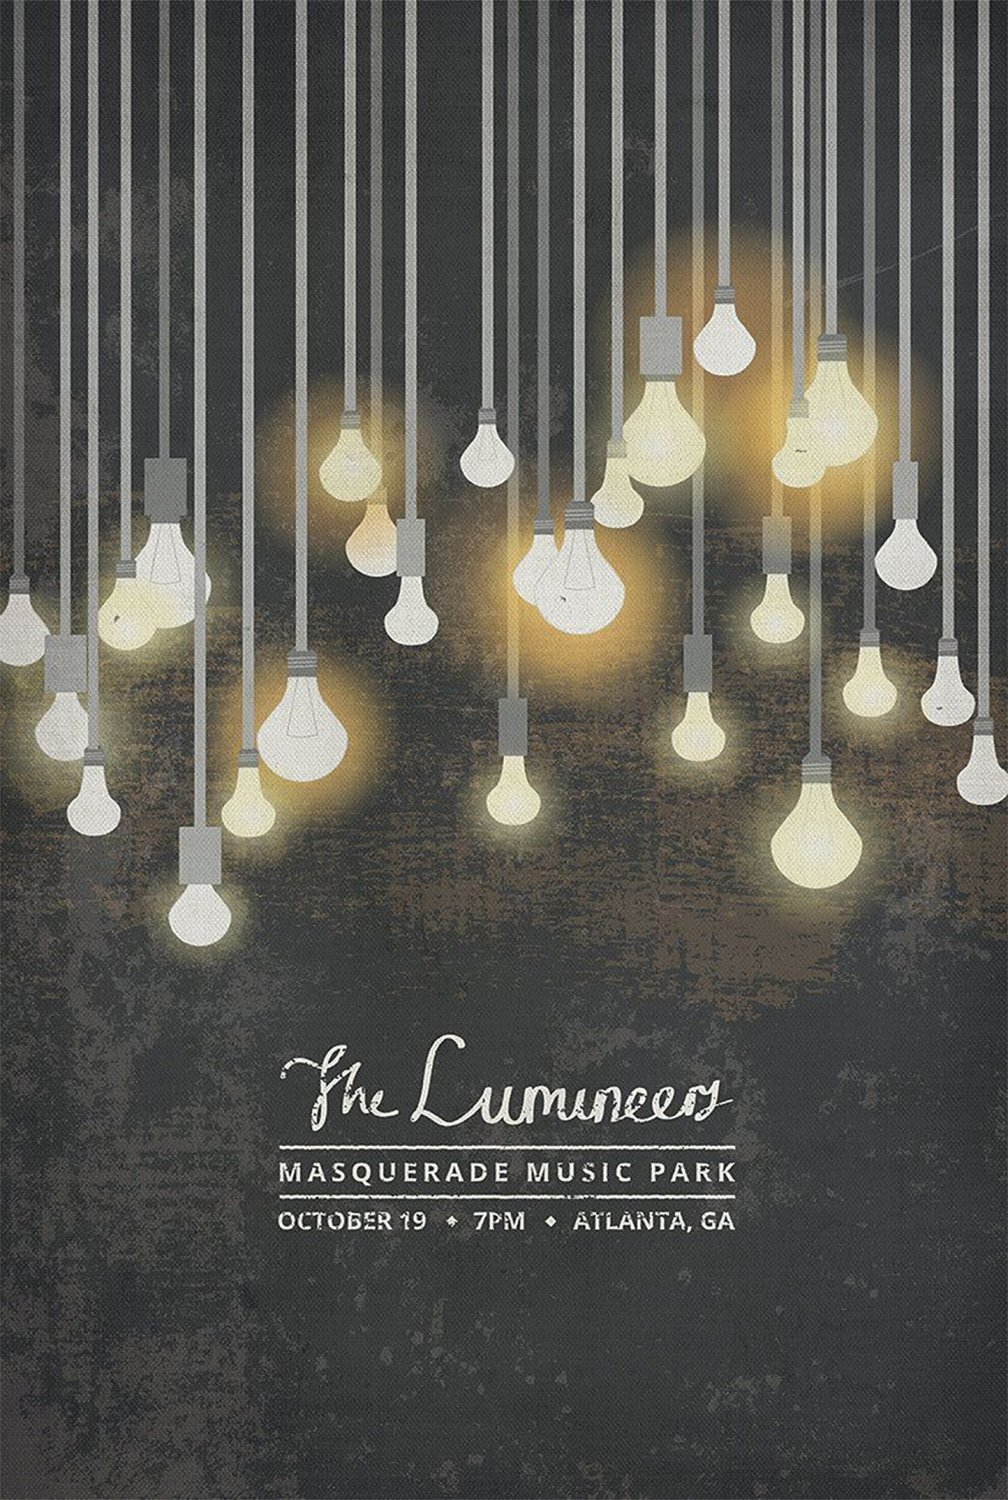 The Lumineers Tour 18x28 inches Canvas Print